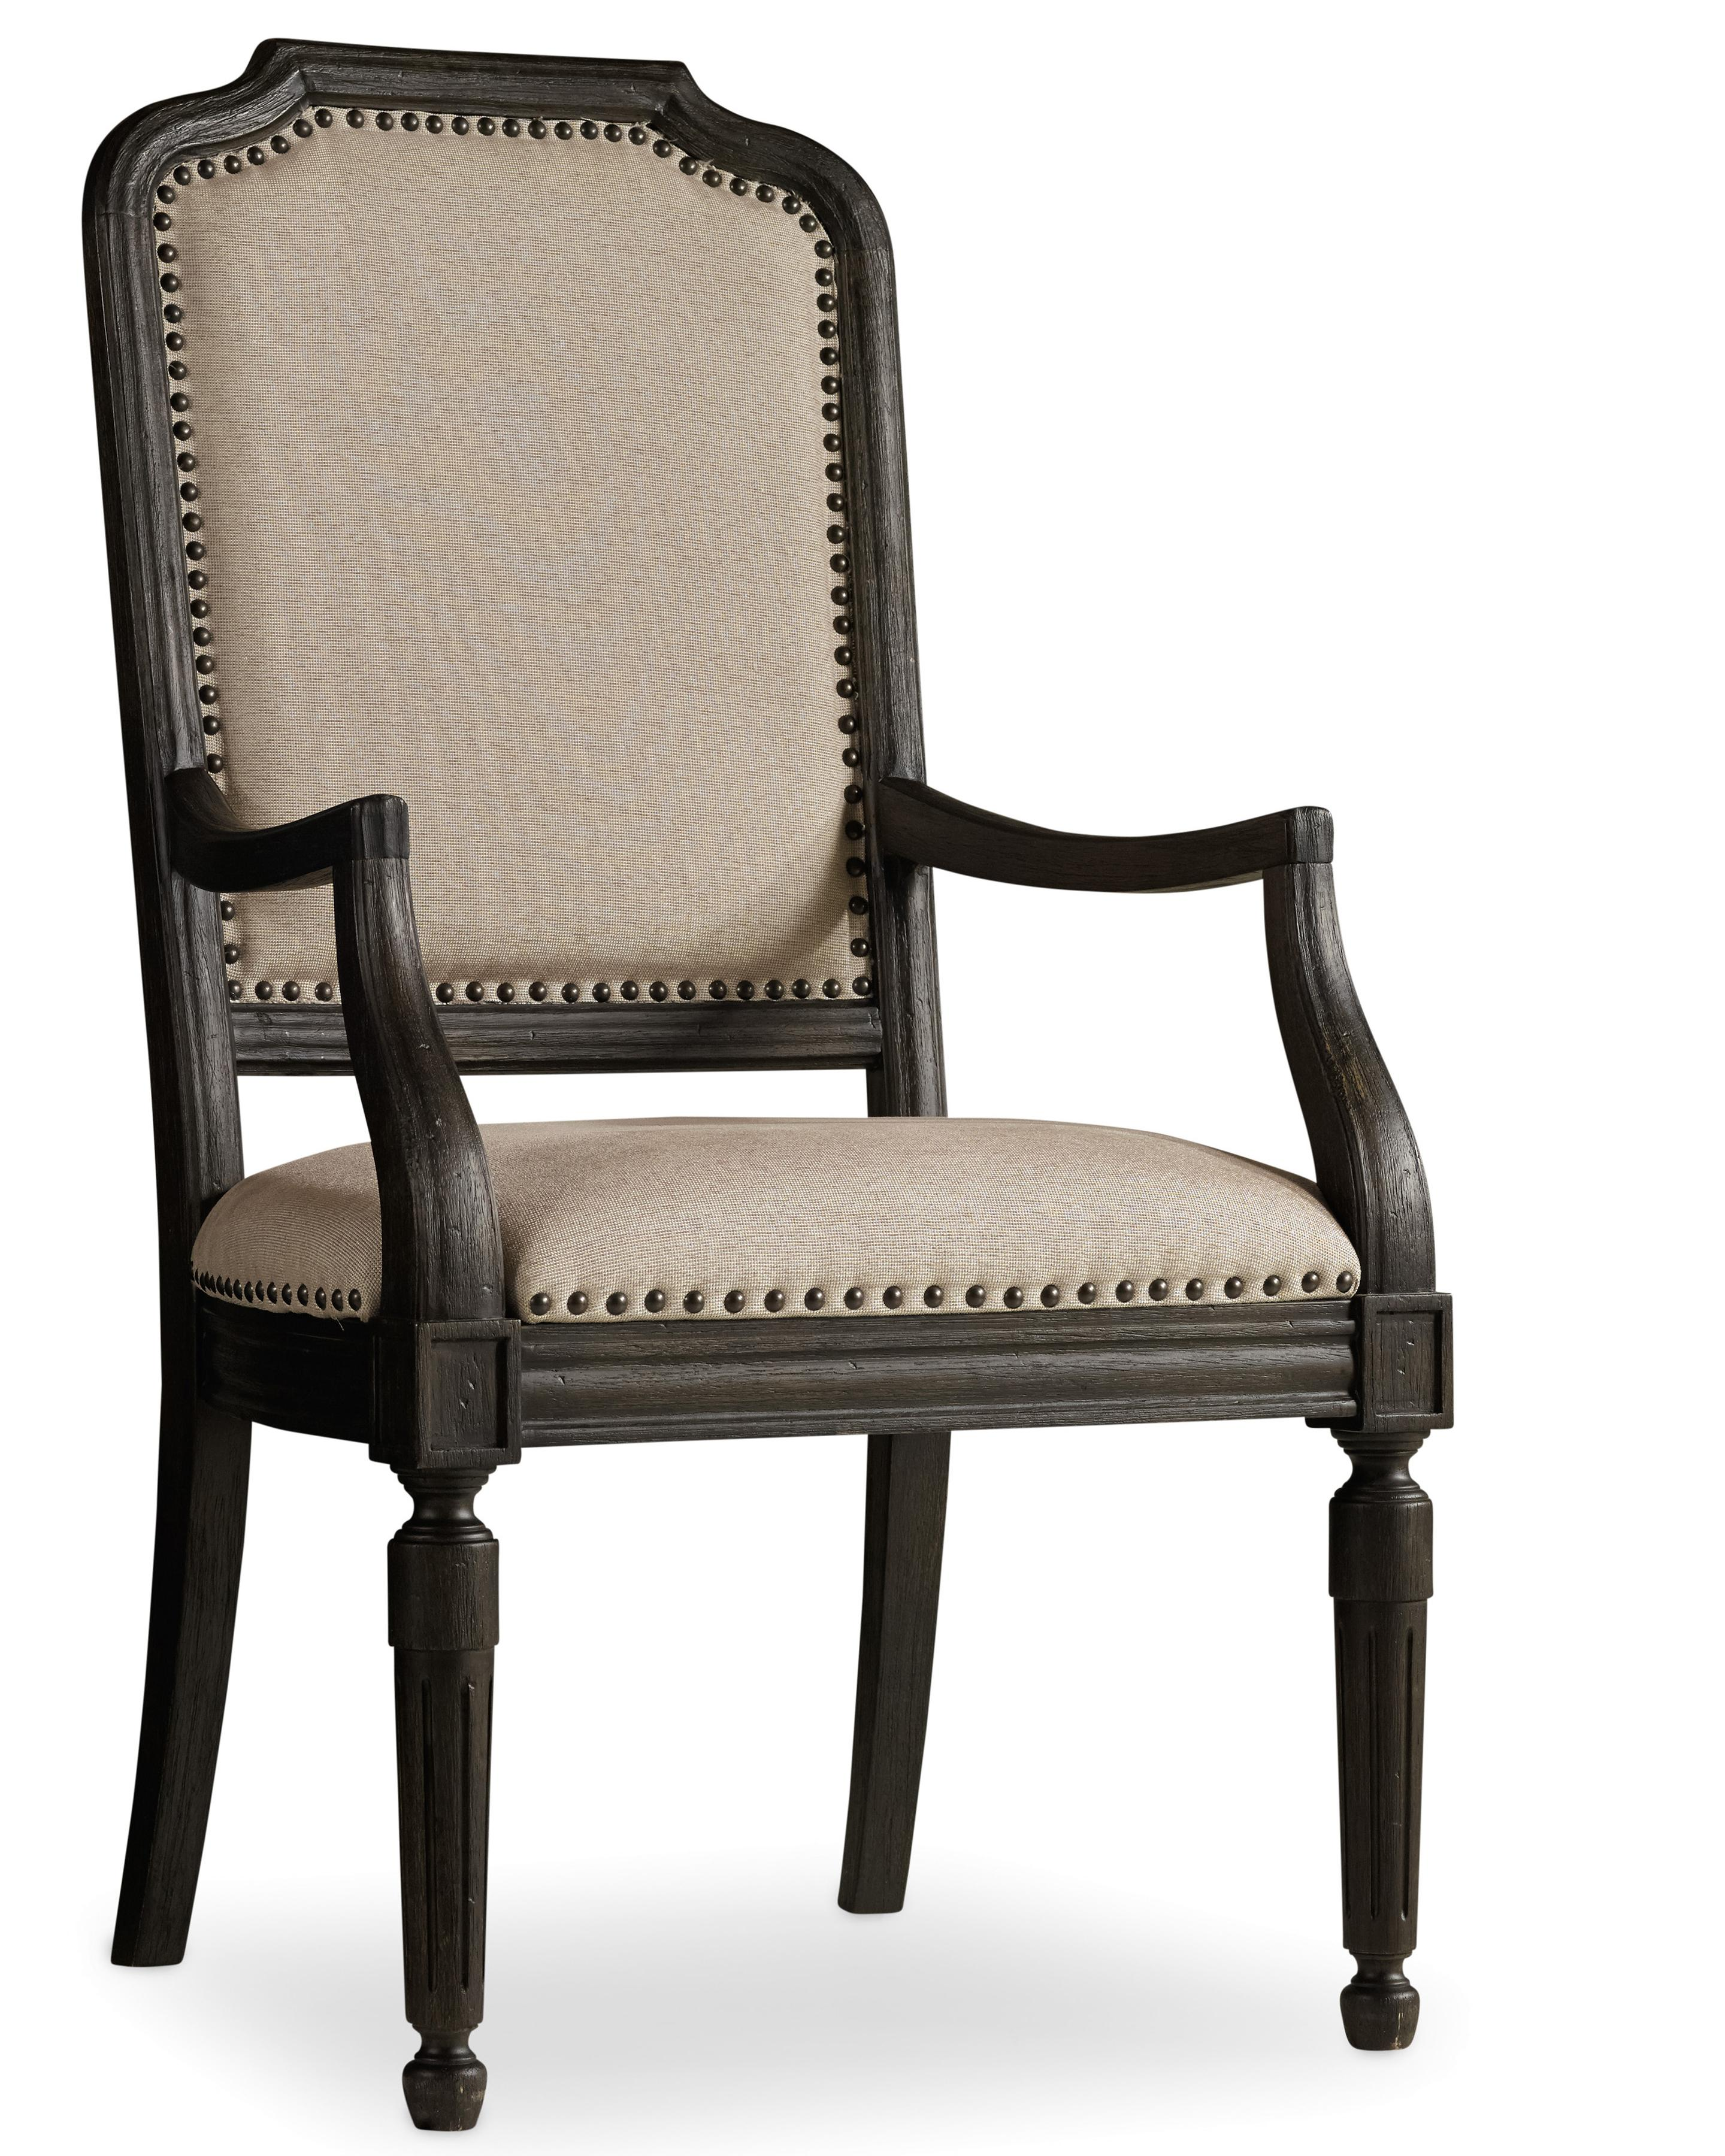 Hooker Furniture Corsica Upholstered Arm Chair - Item Number: 5280-75401